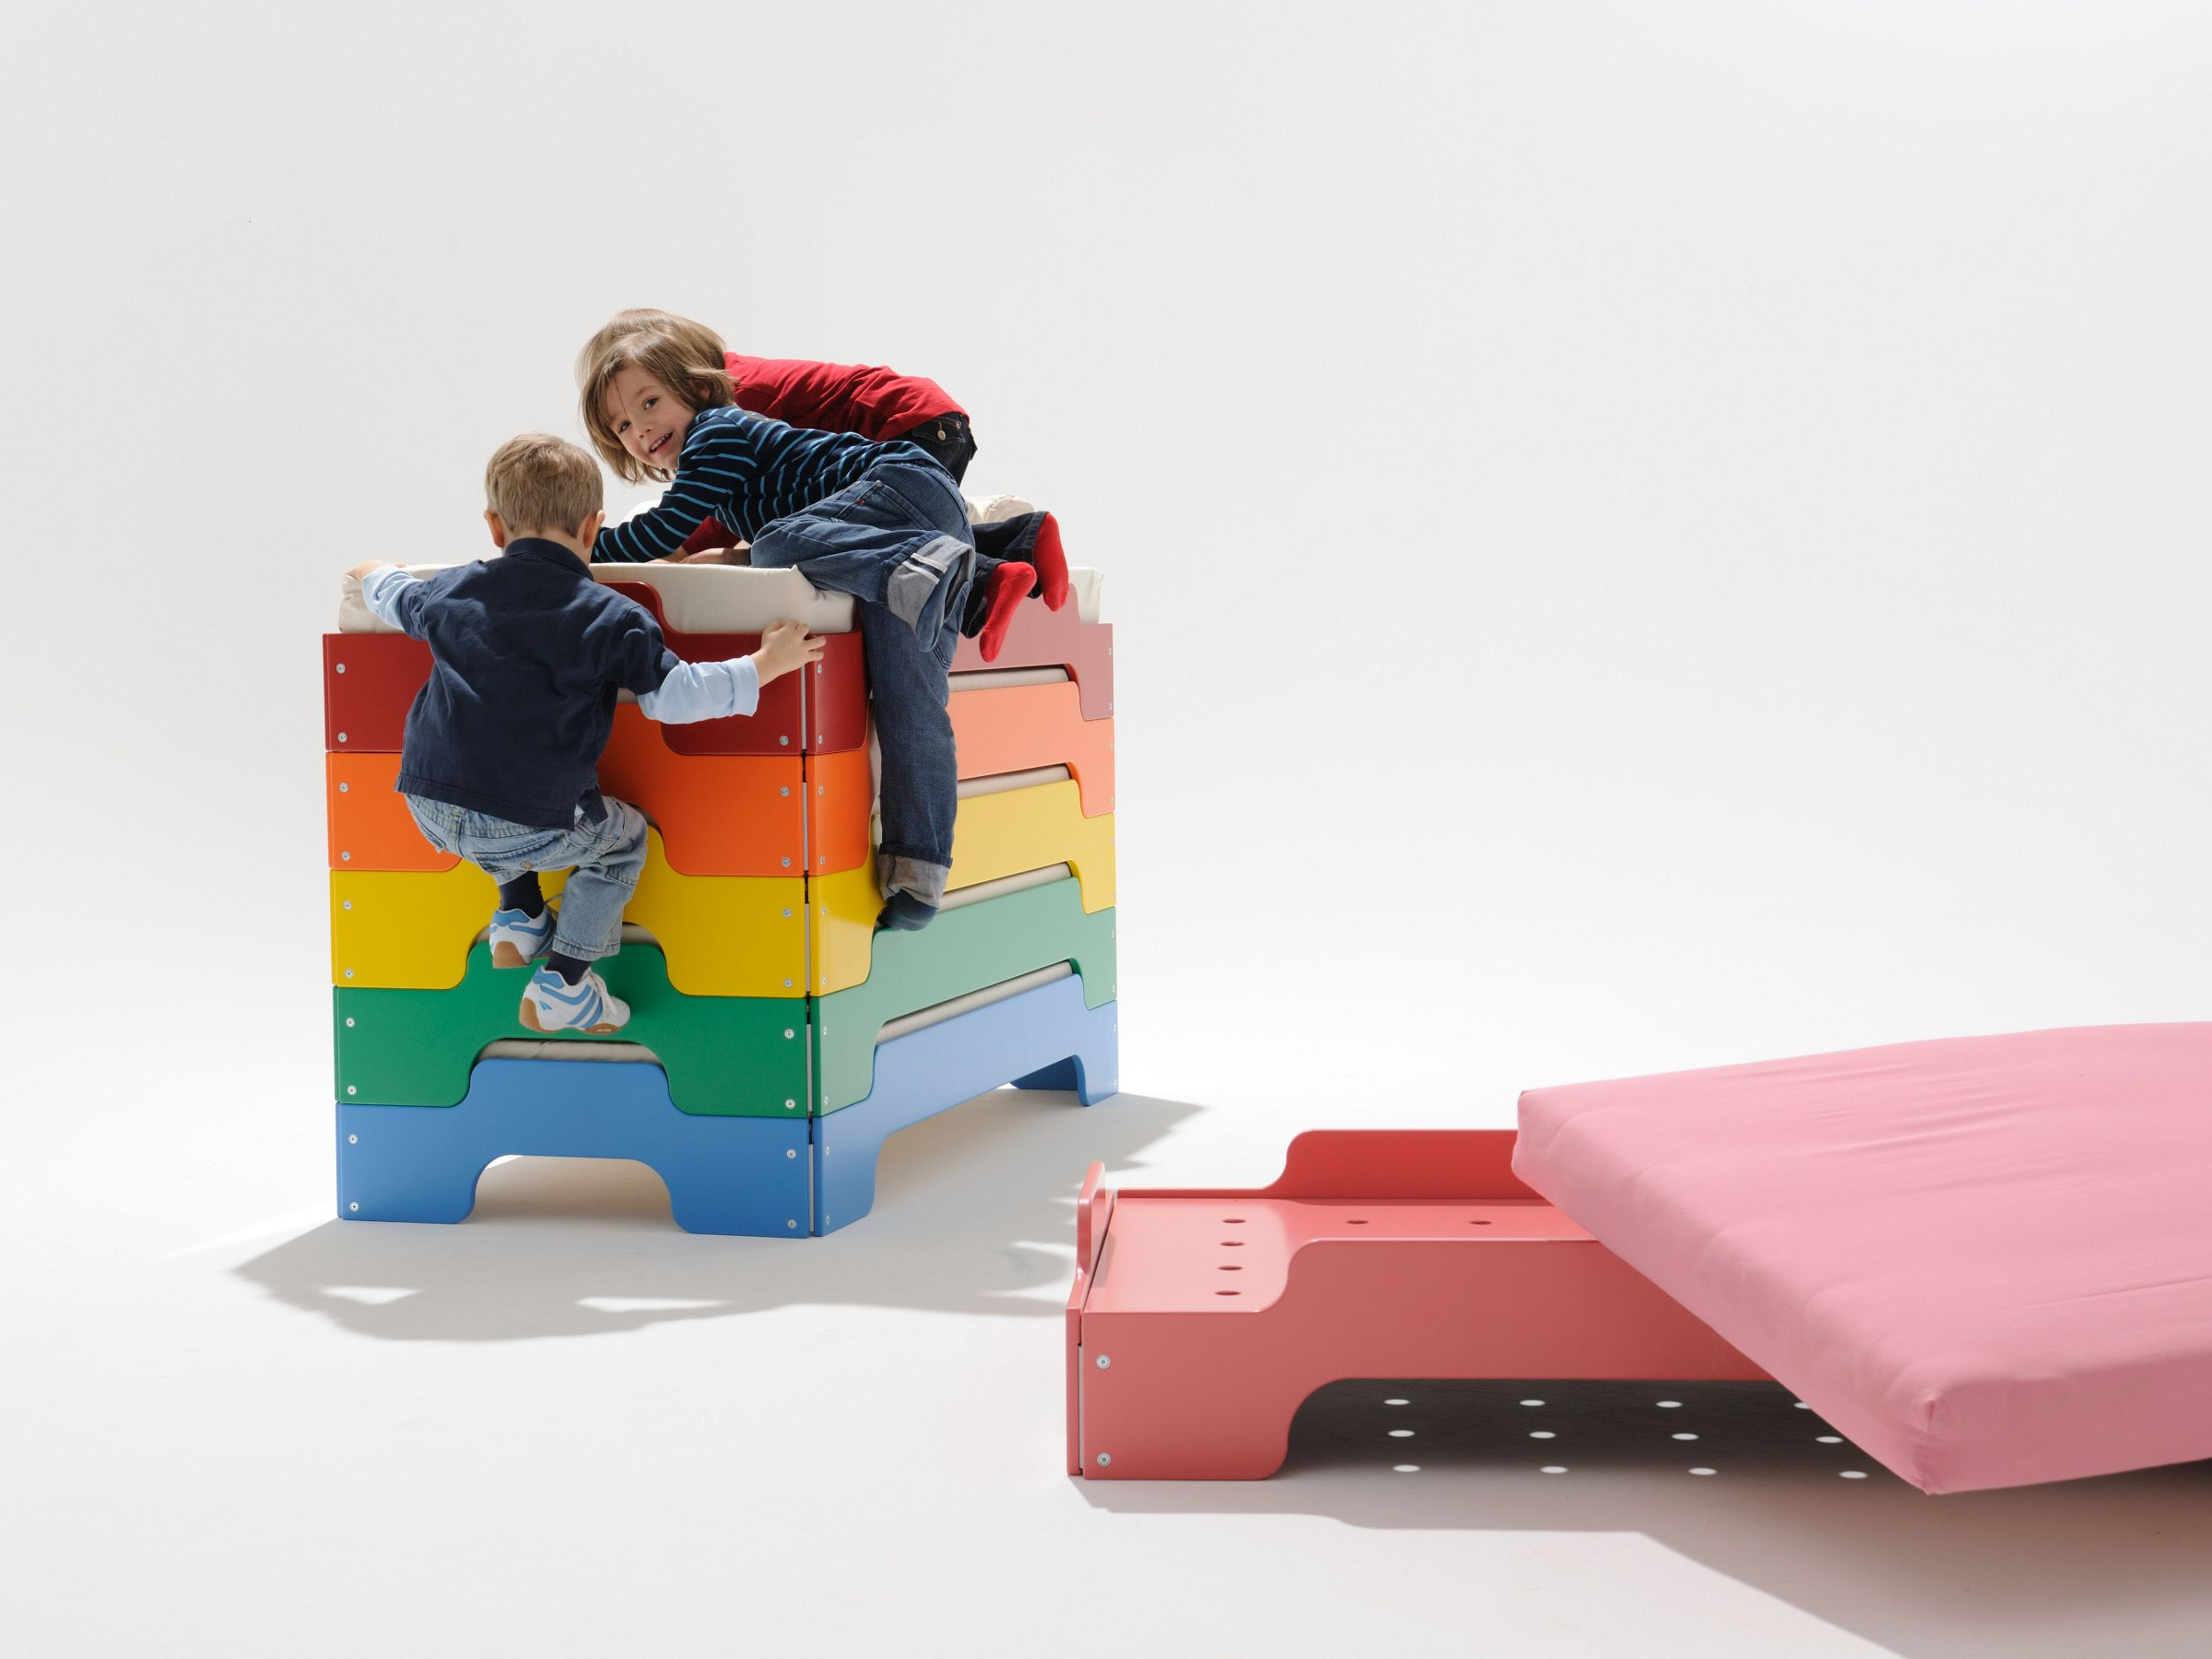 Stapelliege Kinder By Müller Small Living Design Rolf Heide Kid Beds Eclectic Furniture Bed